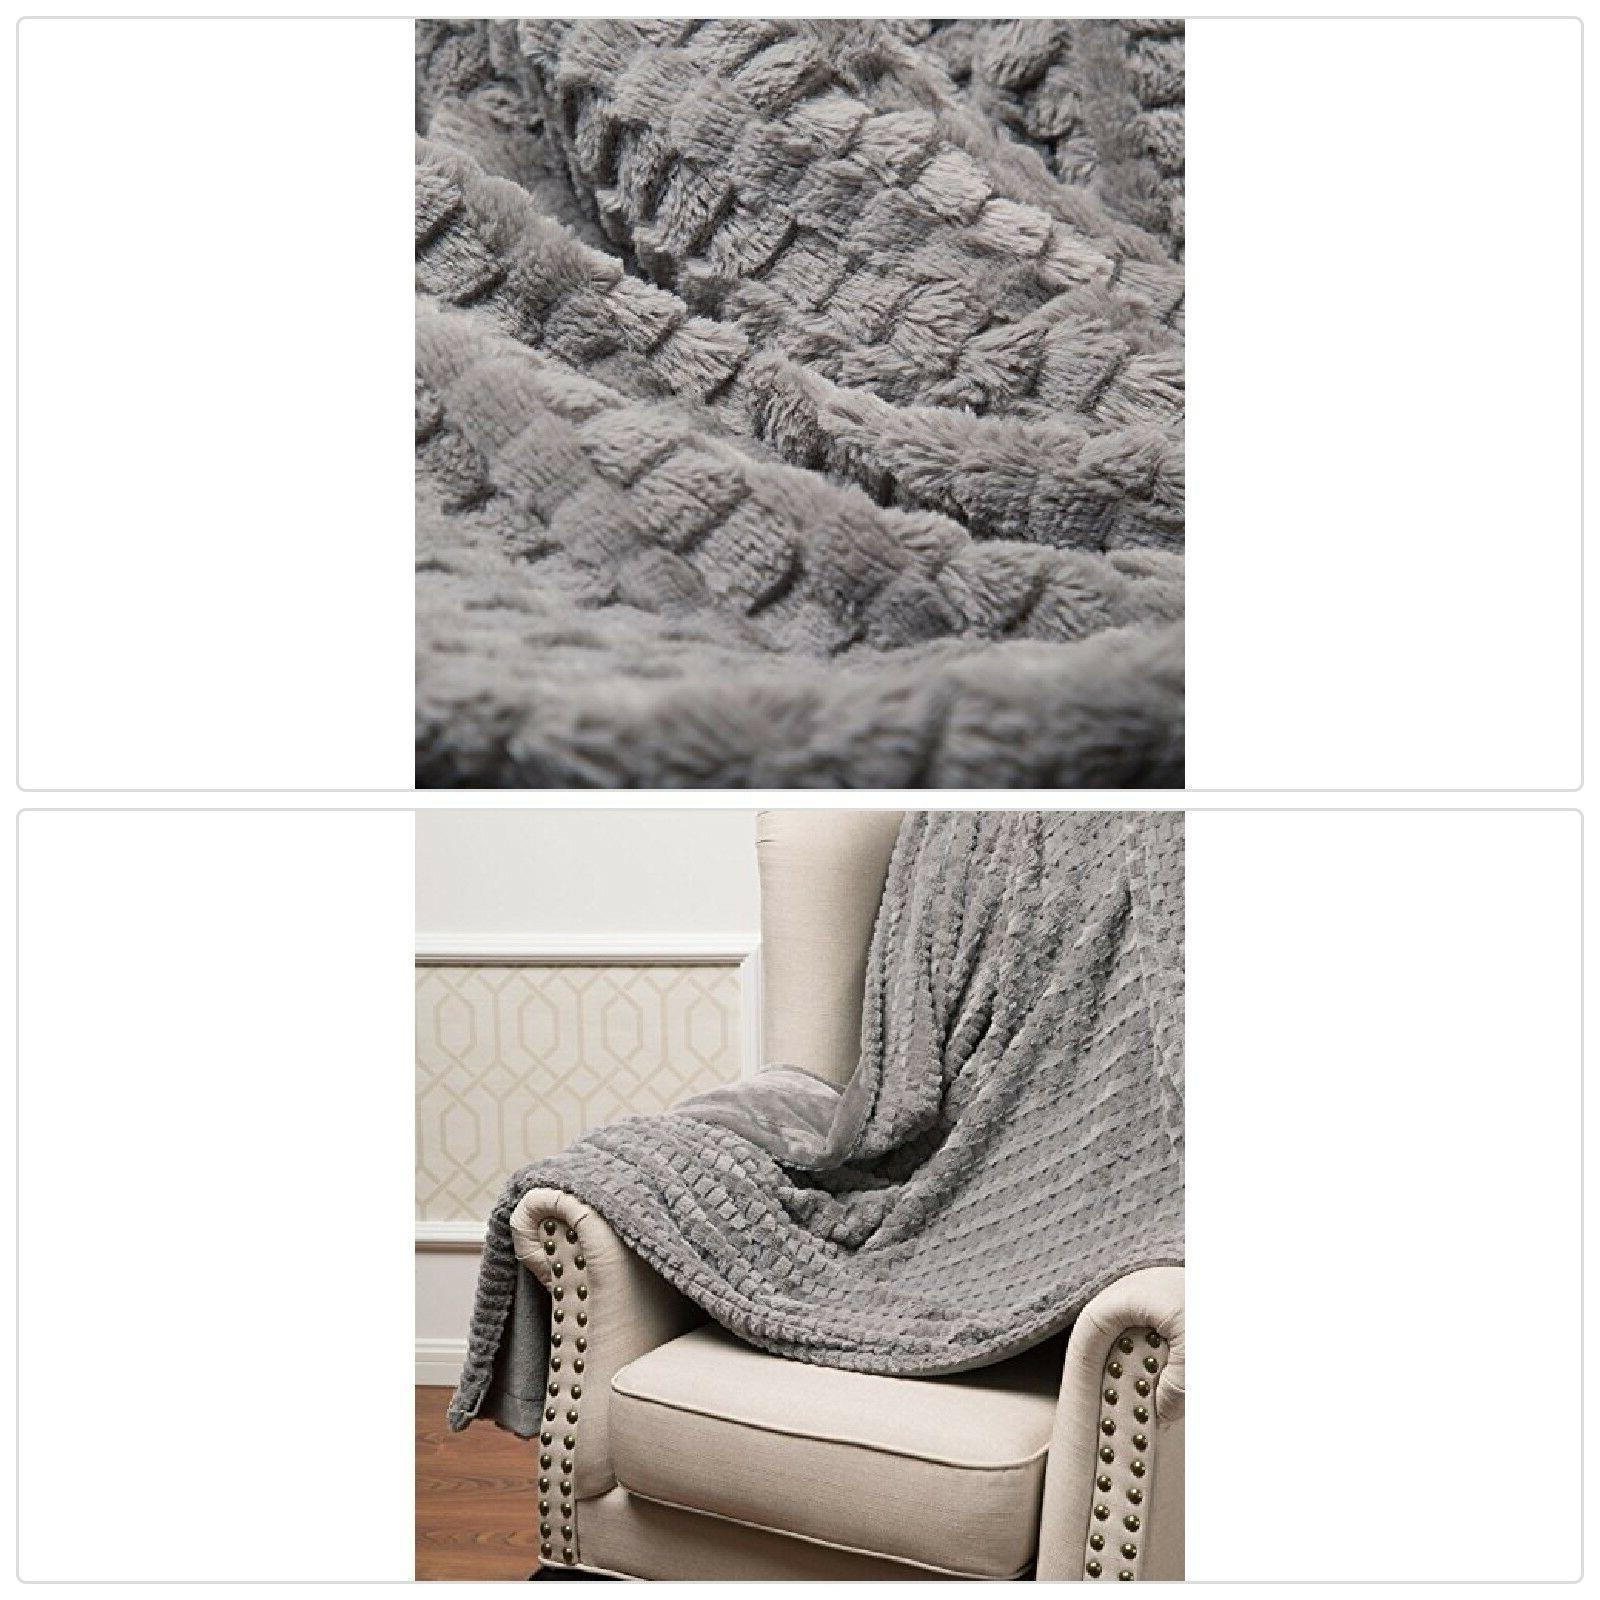 Bedsure Faux Fur Throw Blanket Fleece Bed Throw 50quotx60quo